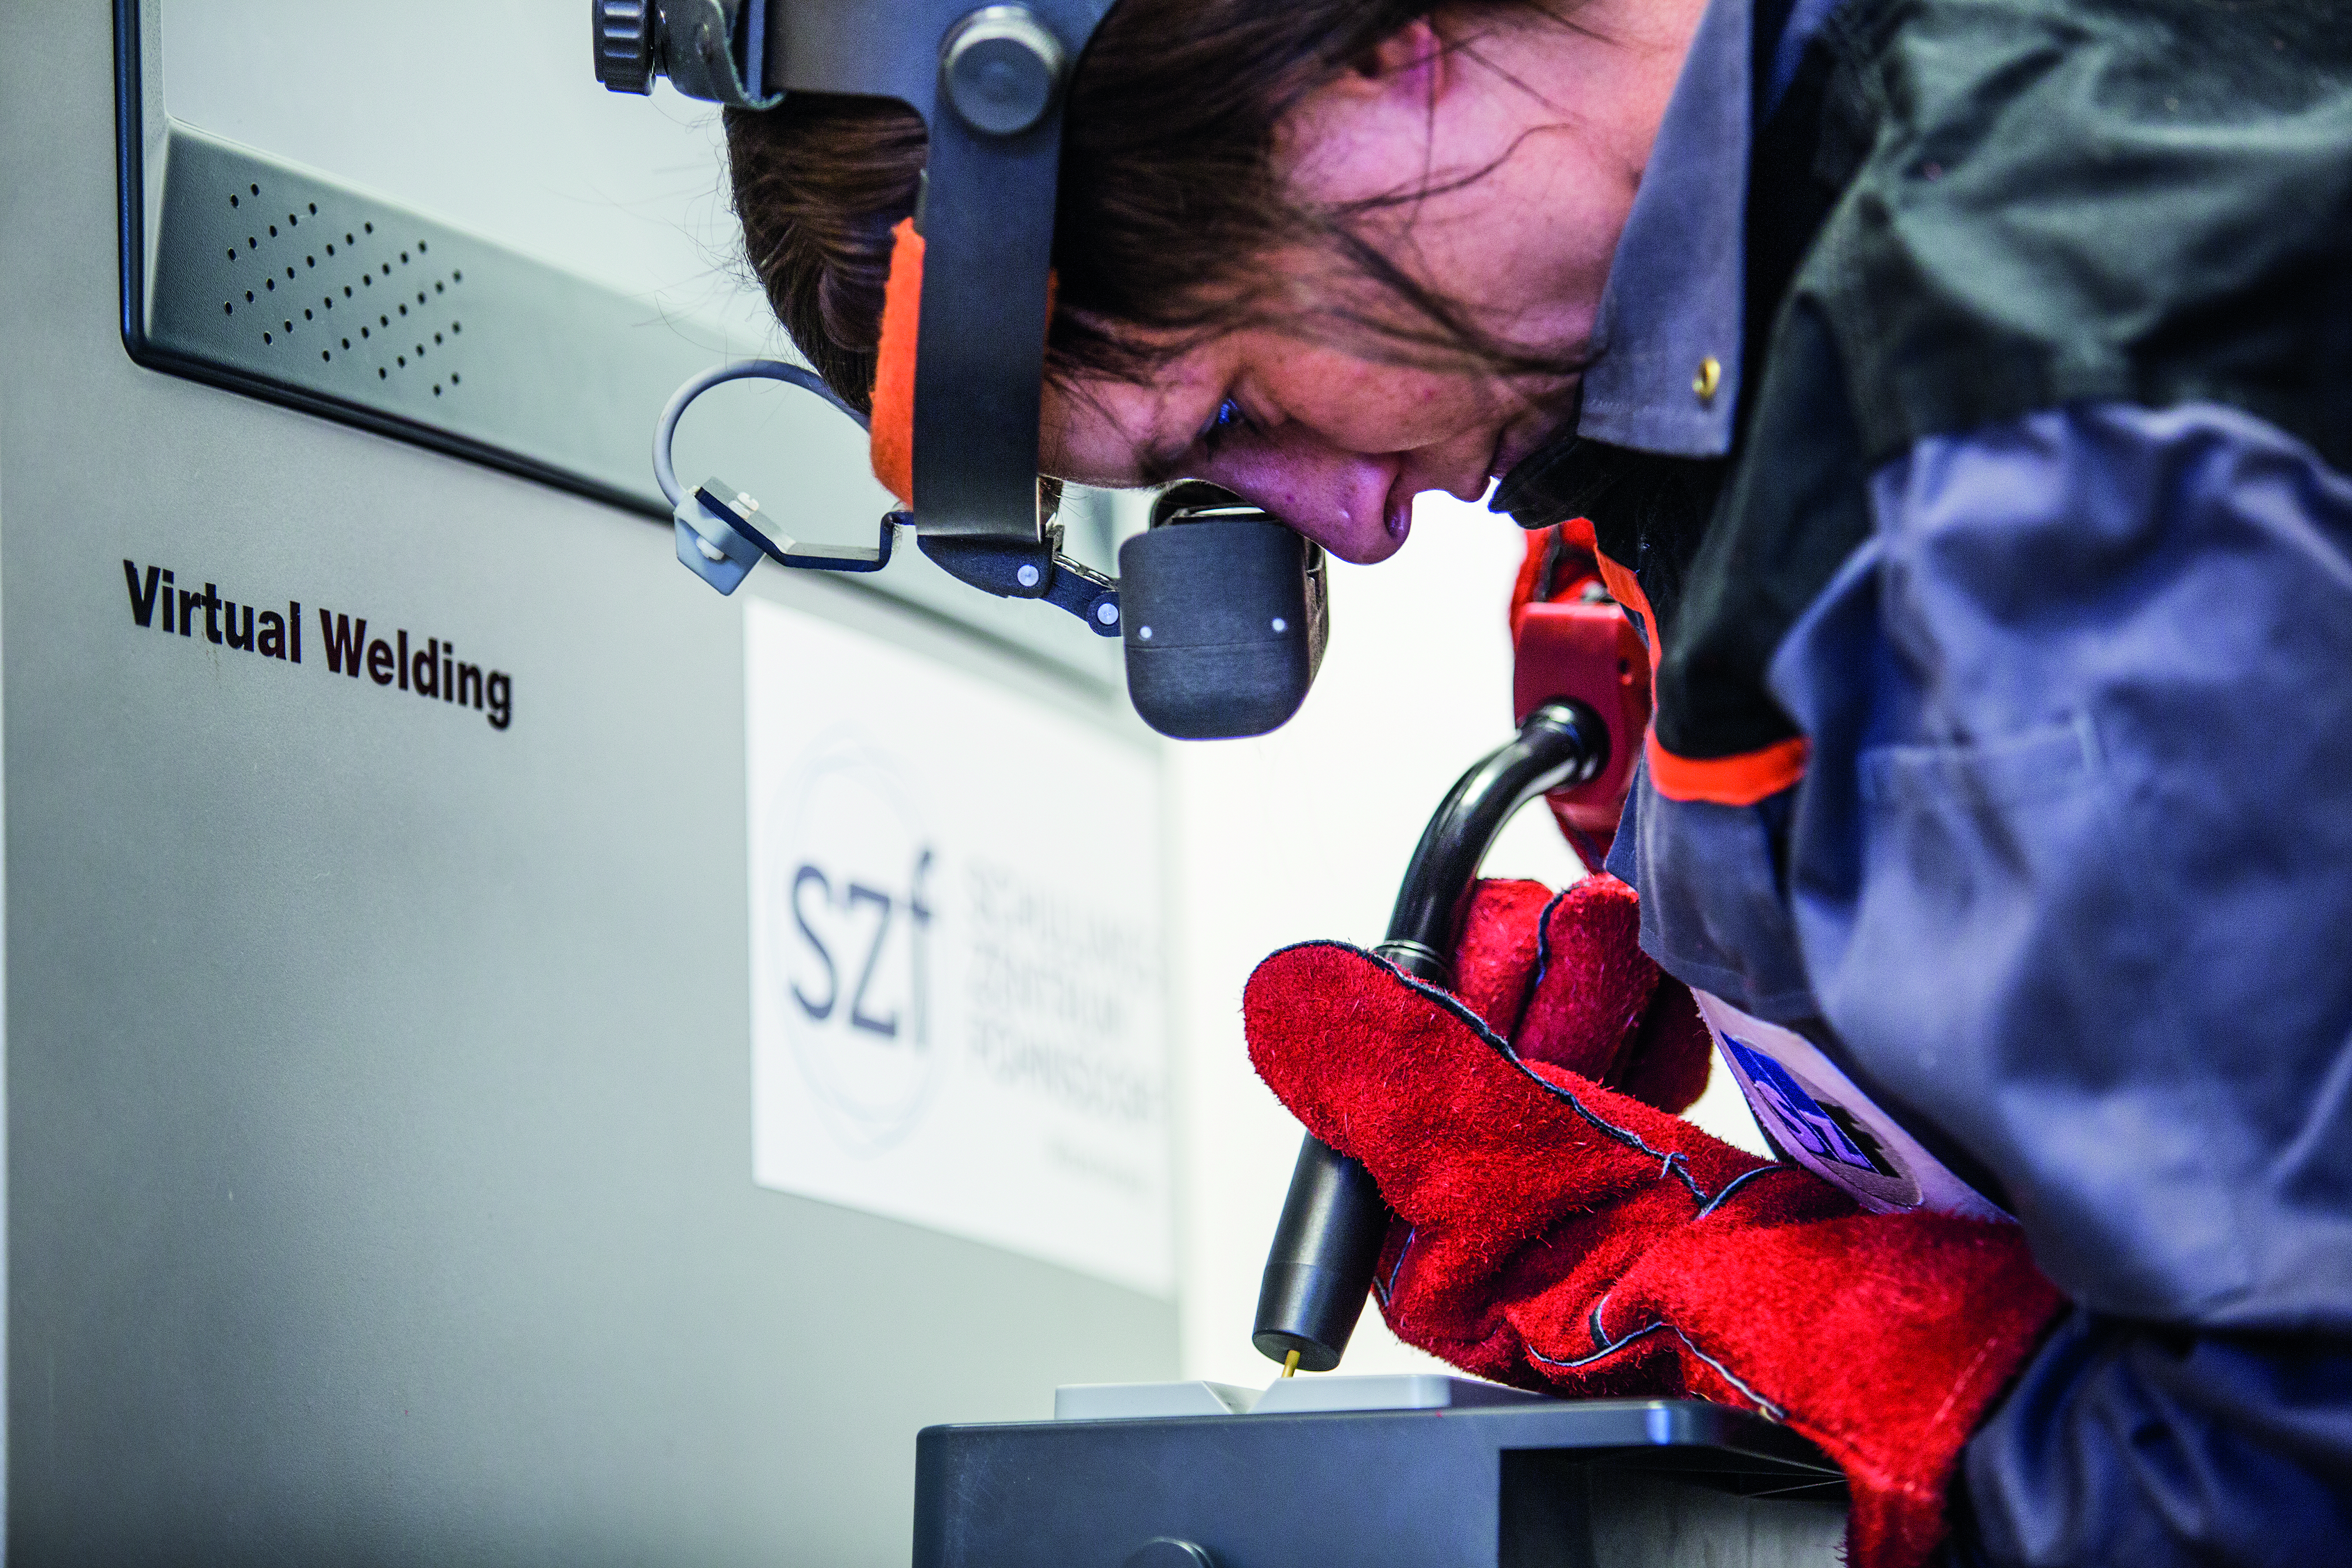 f175372788 Learning to weld with a personal trainer - Fronius Virtual Welding ...